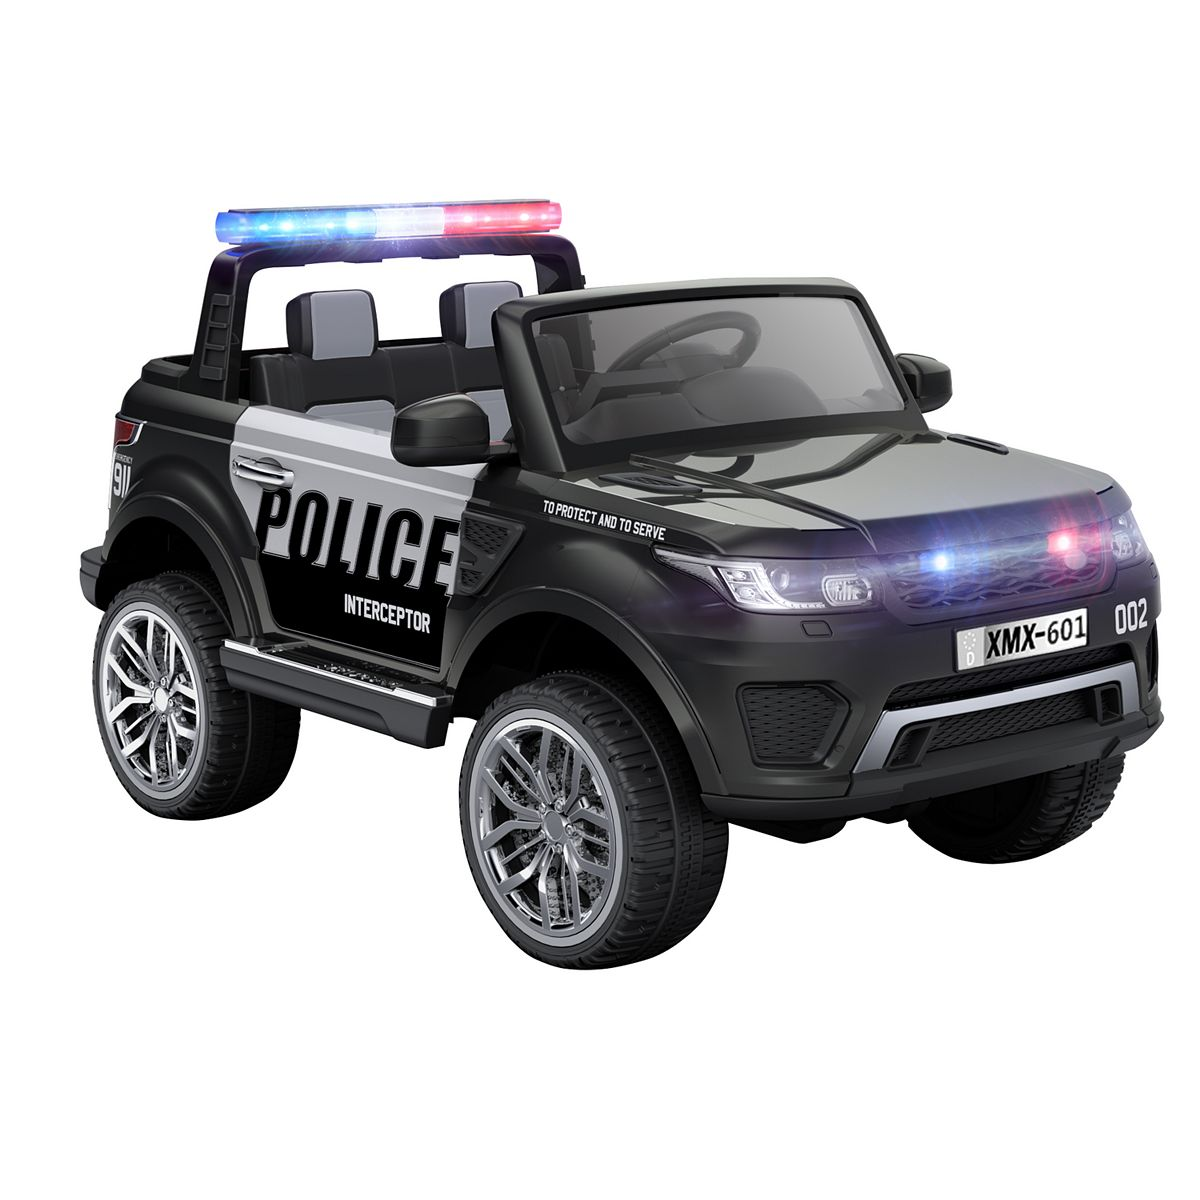 Blazin Wheels 12V Ride-On Police Vehicle + $70.00 Kohls Cash